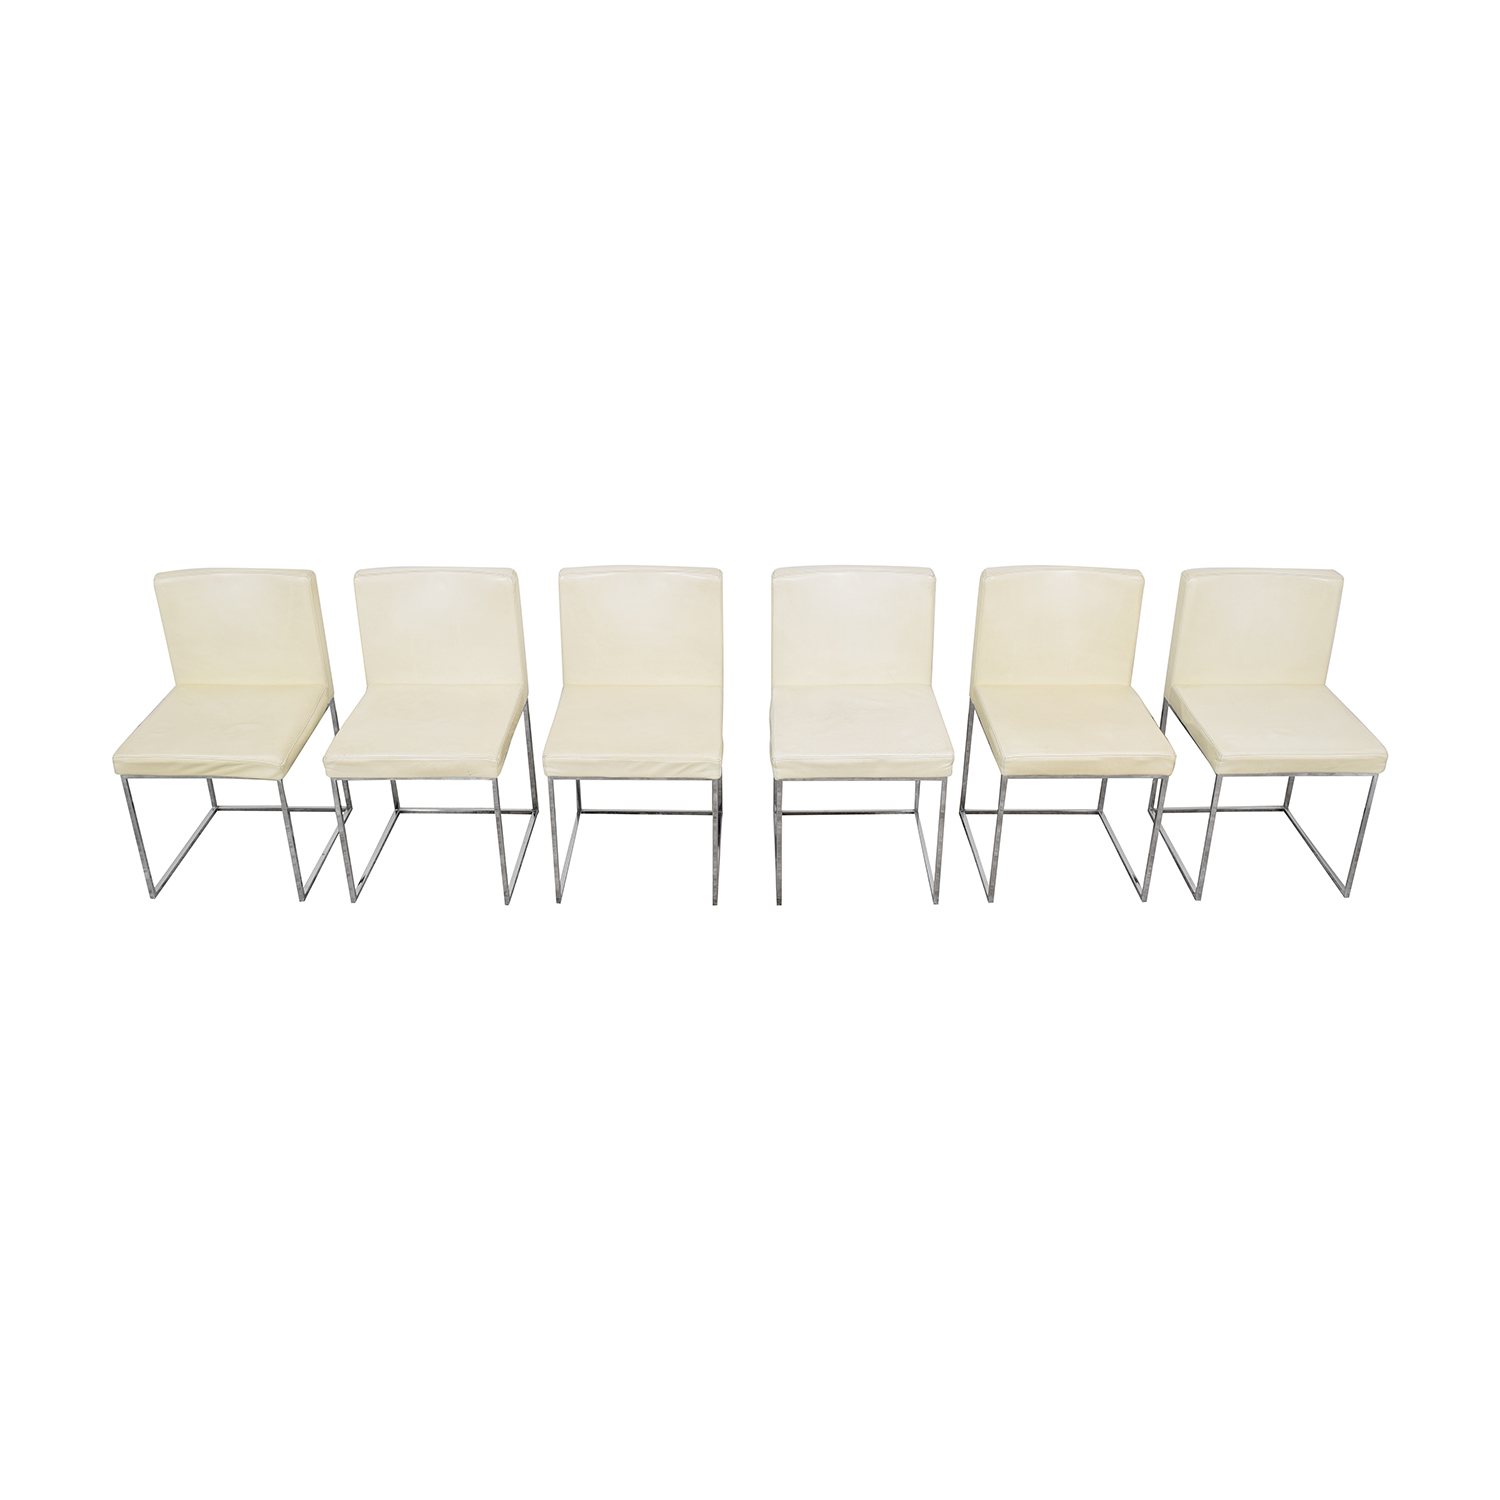 Calligaris Calligaris Even Plus Leather Chairs Dining Chairs